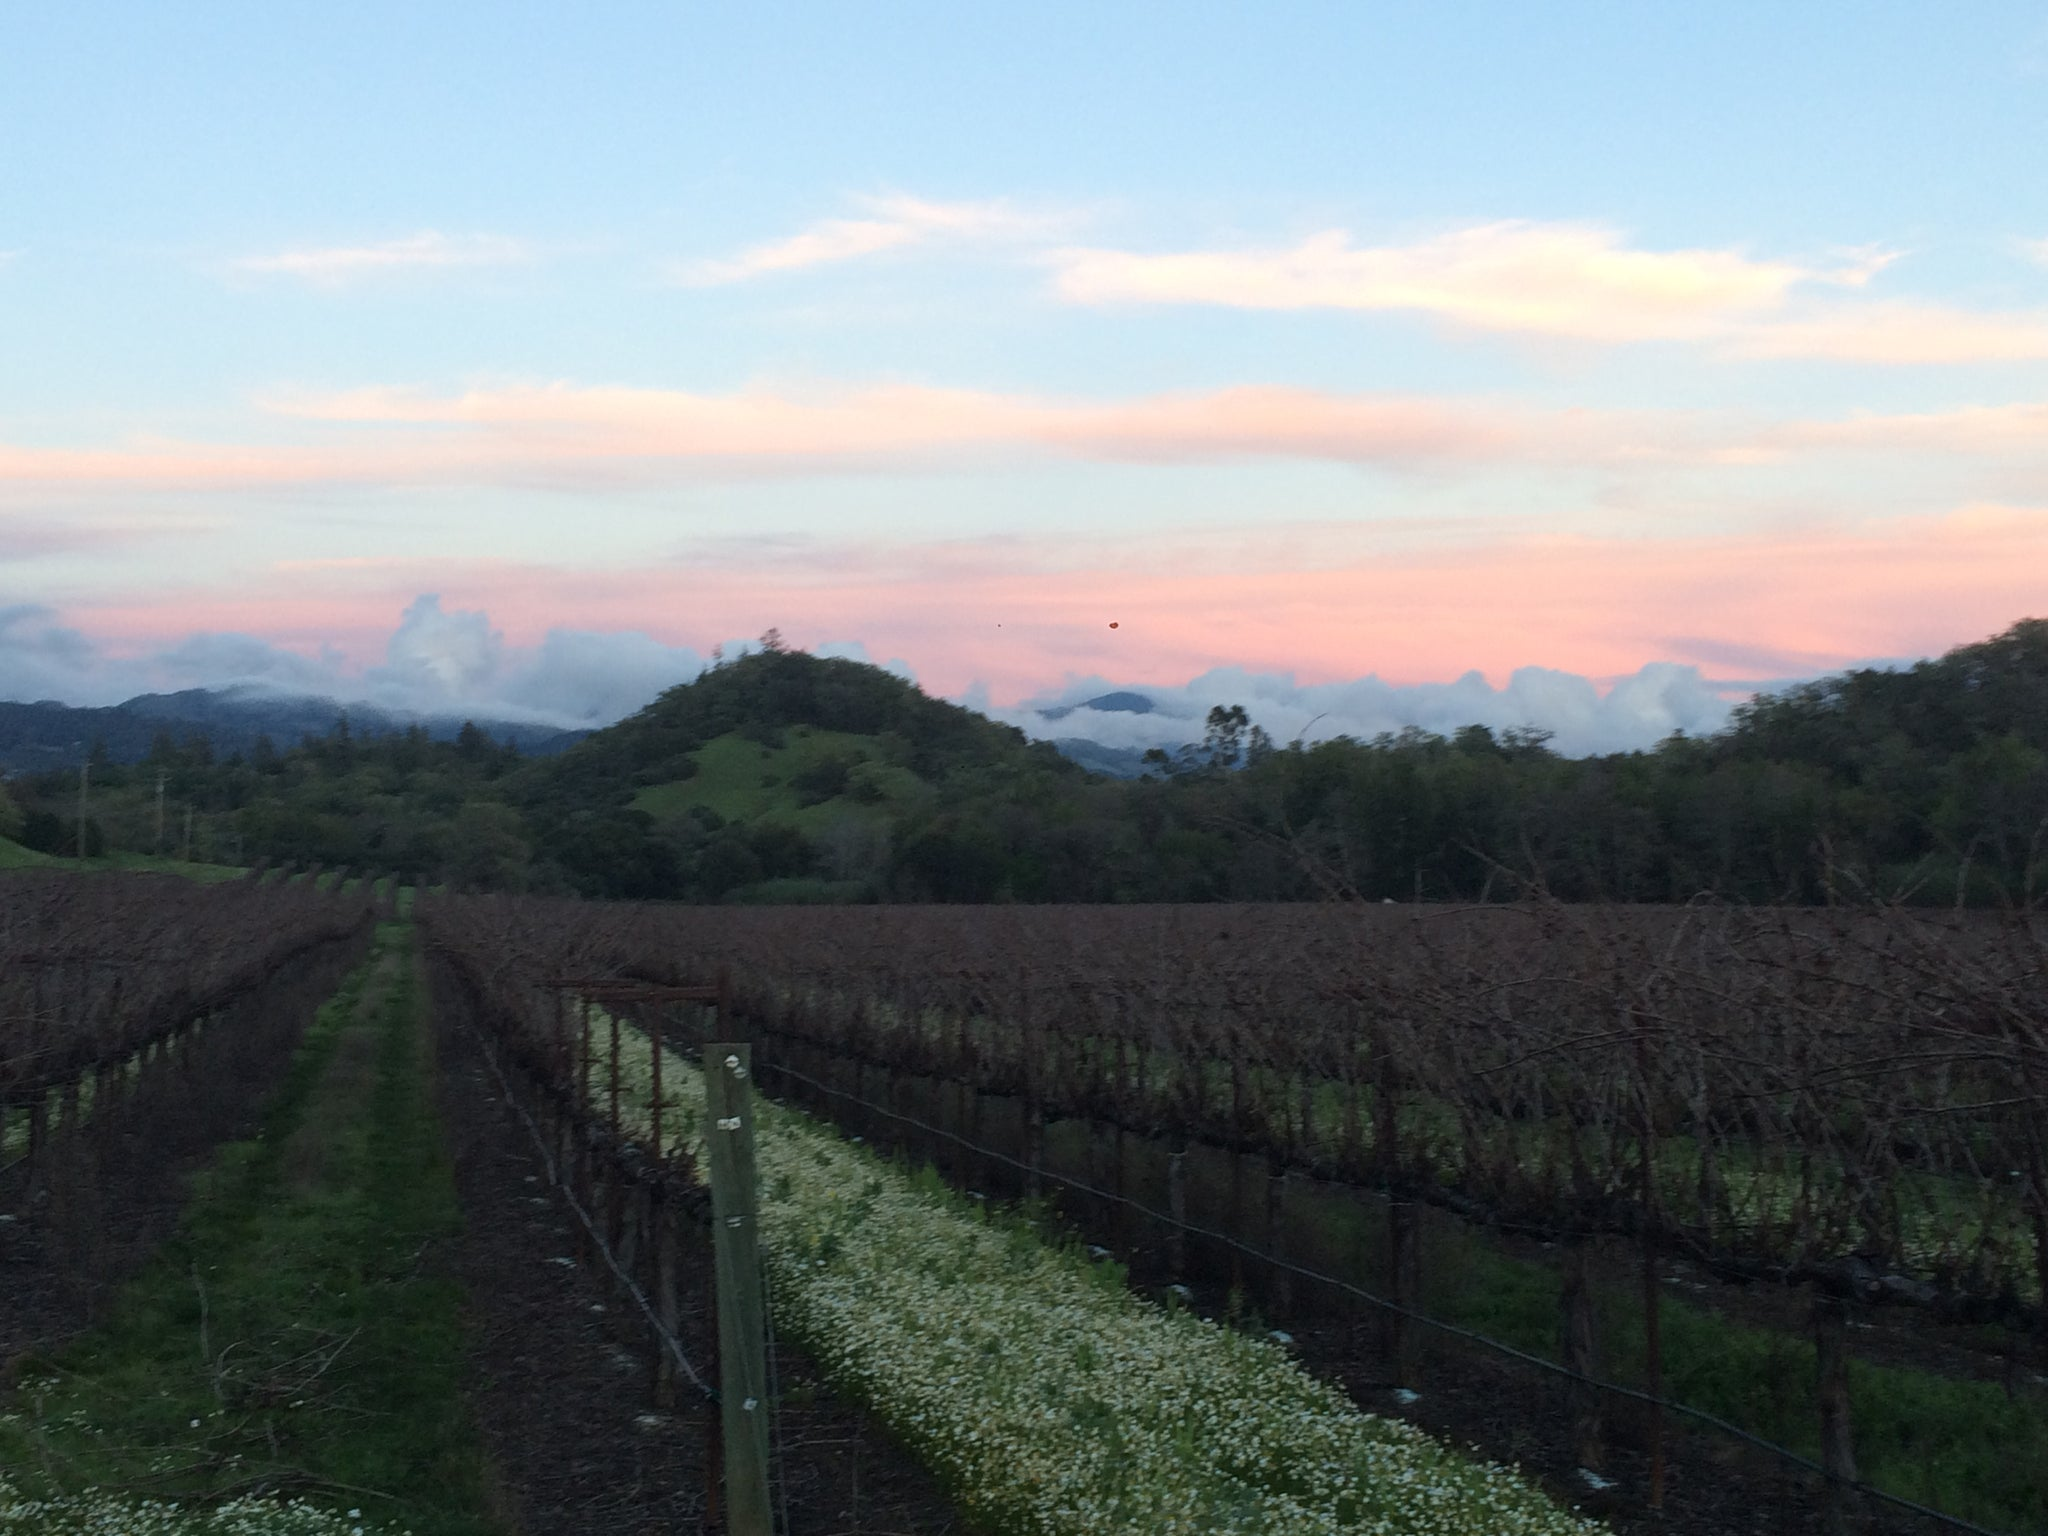 View from the vineyards on the same property as Narrow Bridge Candles.